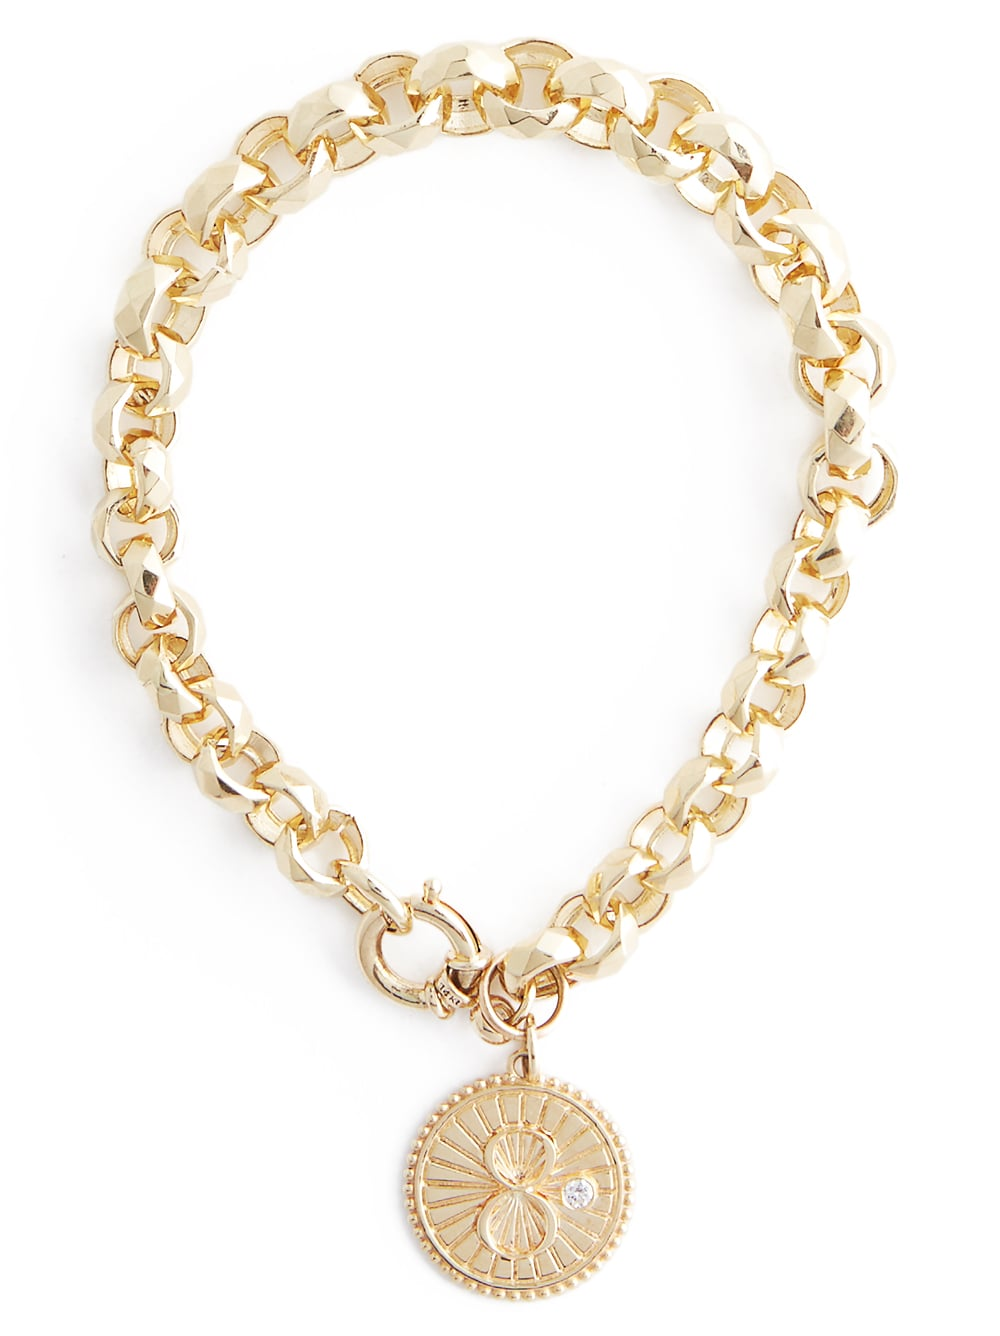 Karma charm bracelet in 18K yellow gold